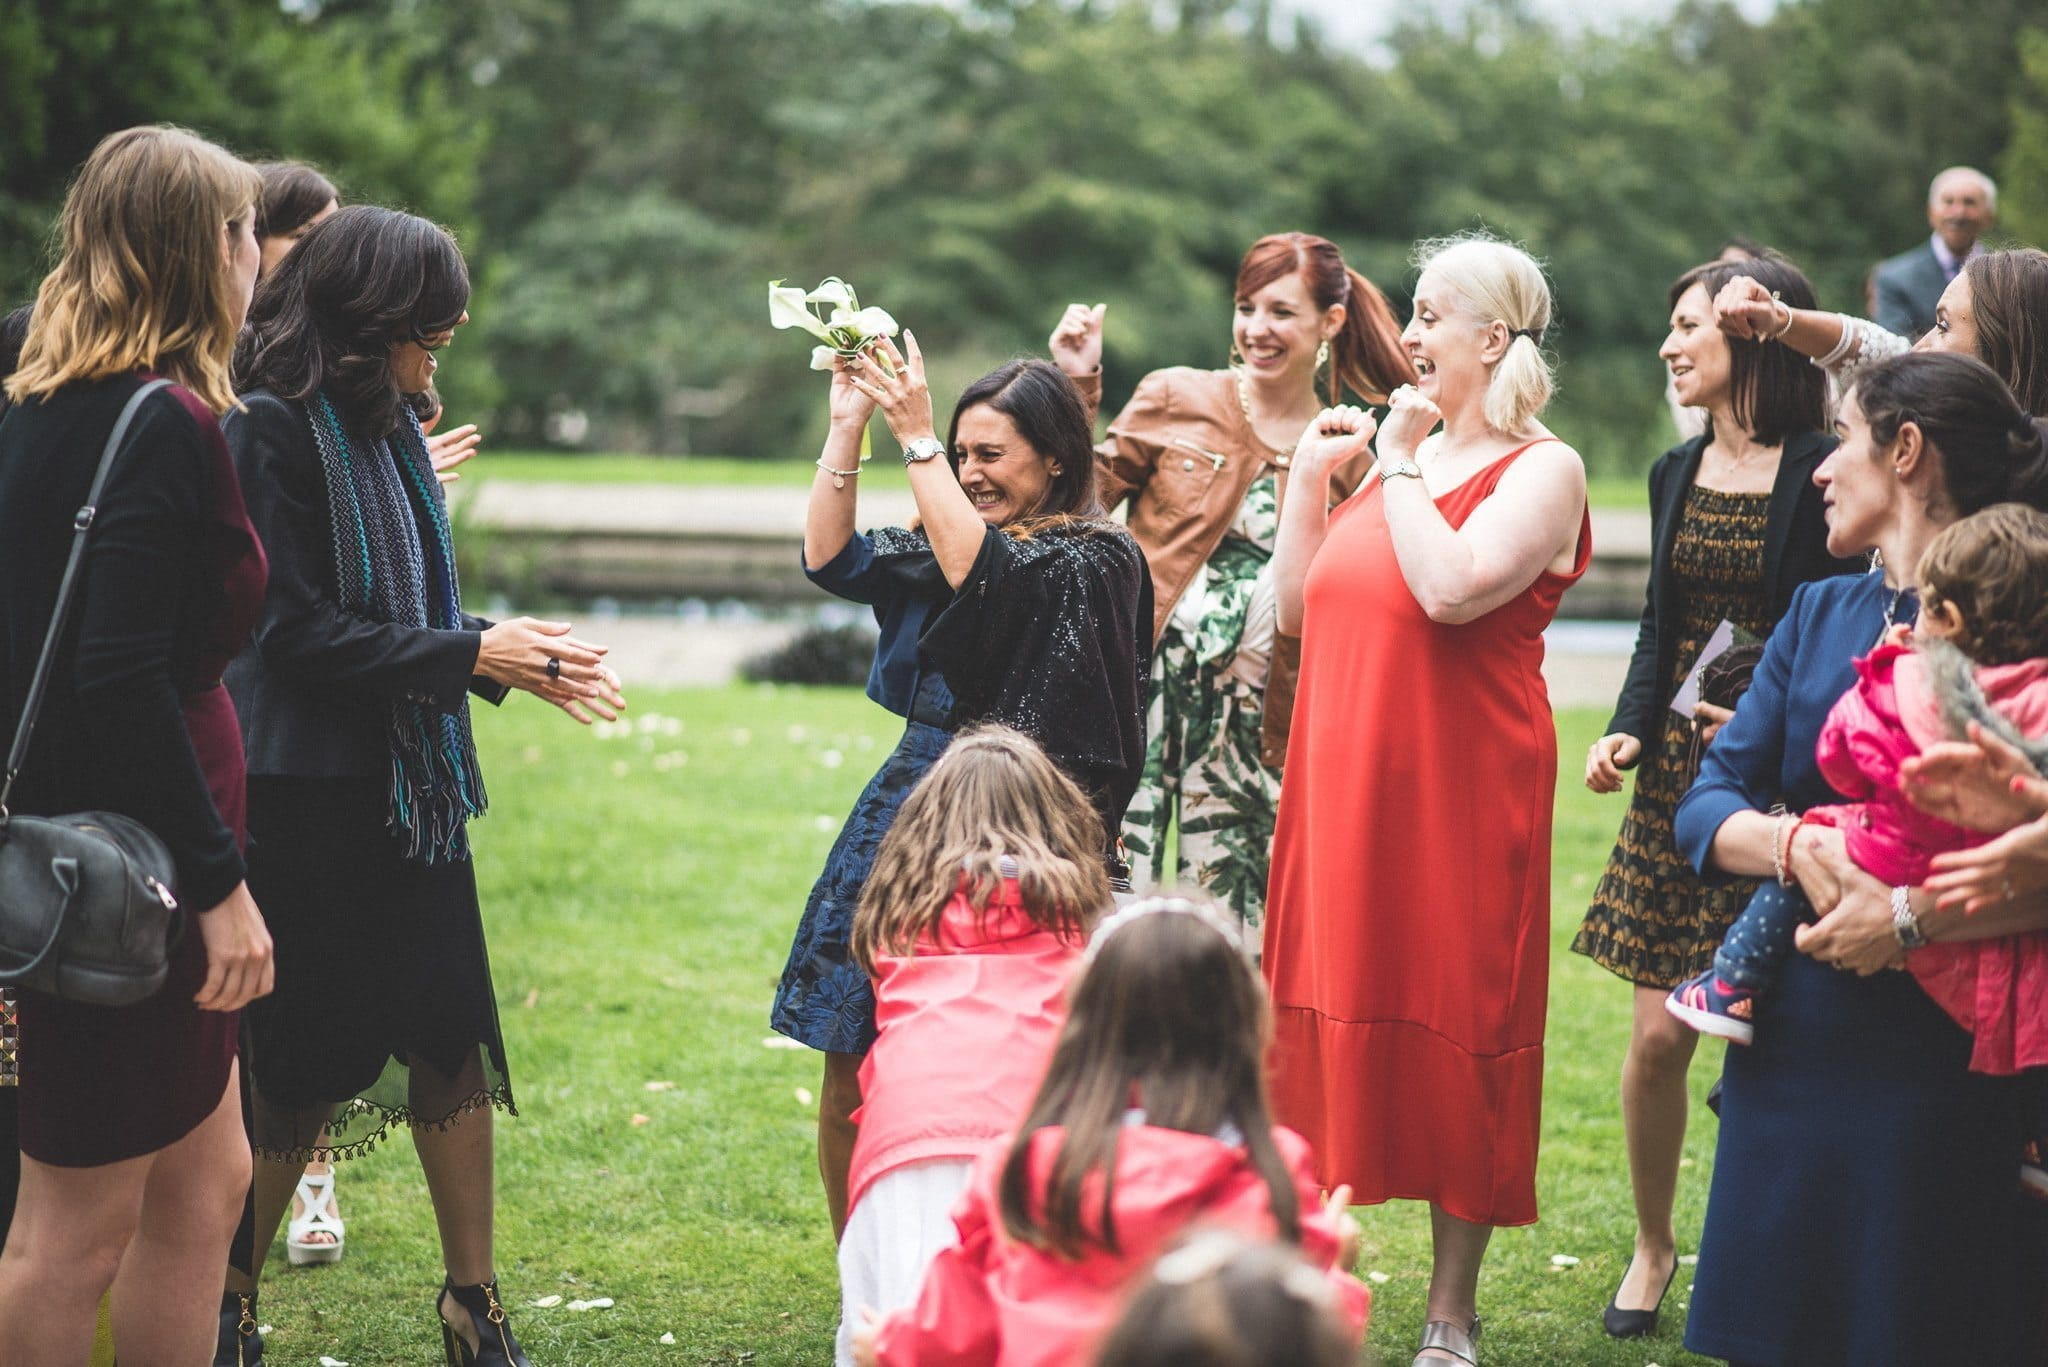 The bouquet is caught by a guest in a black dress while others applaud and cheer